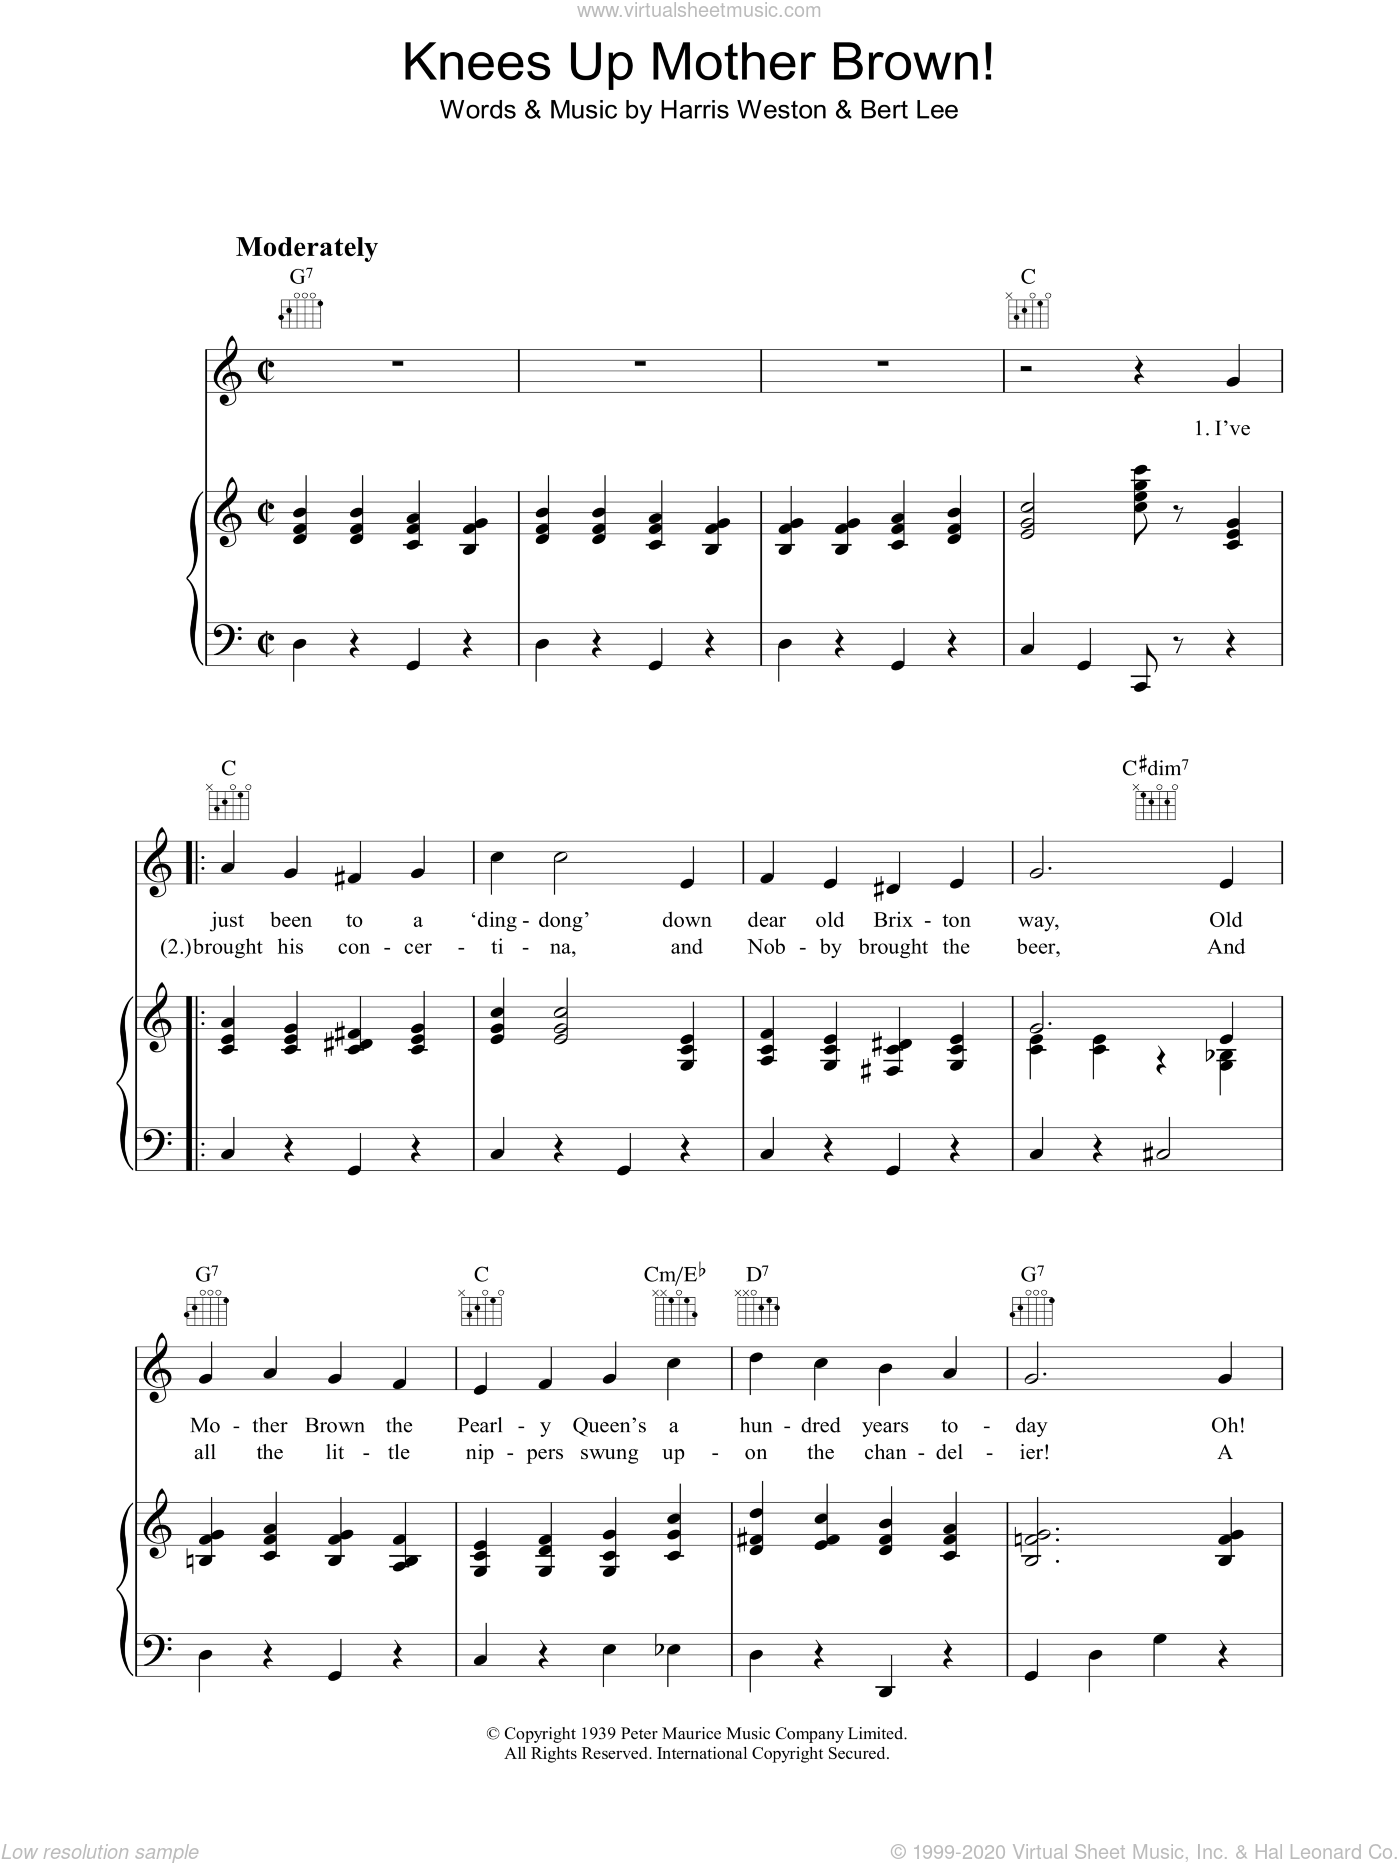 Knees Up Mother Brown sheet music for voice, piano or guitar by Bert Lee